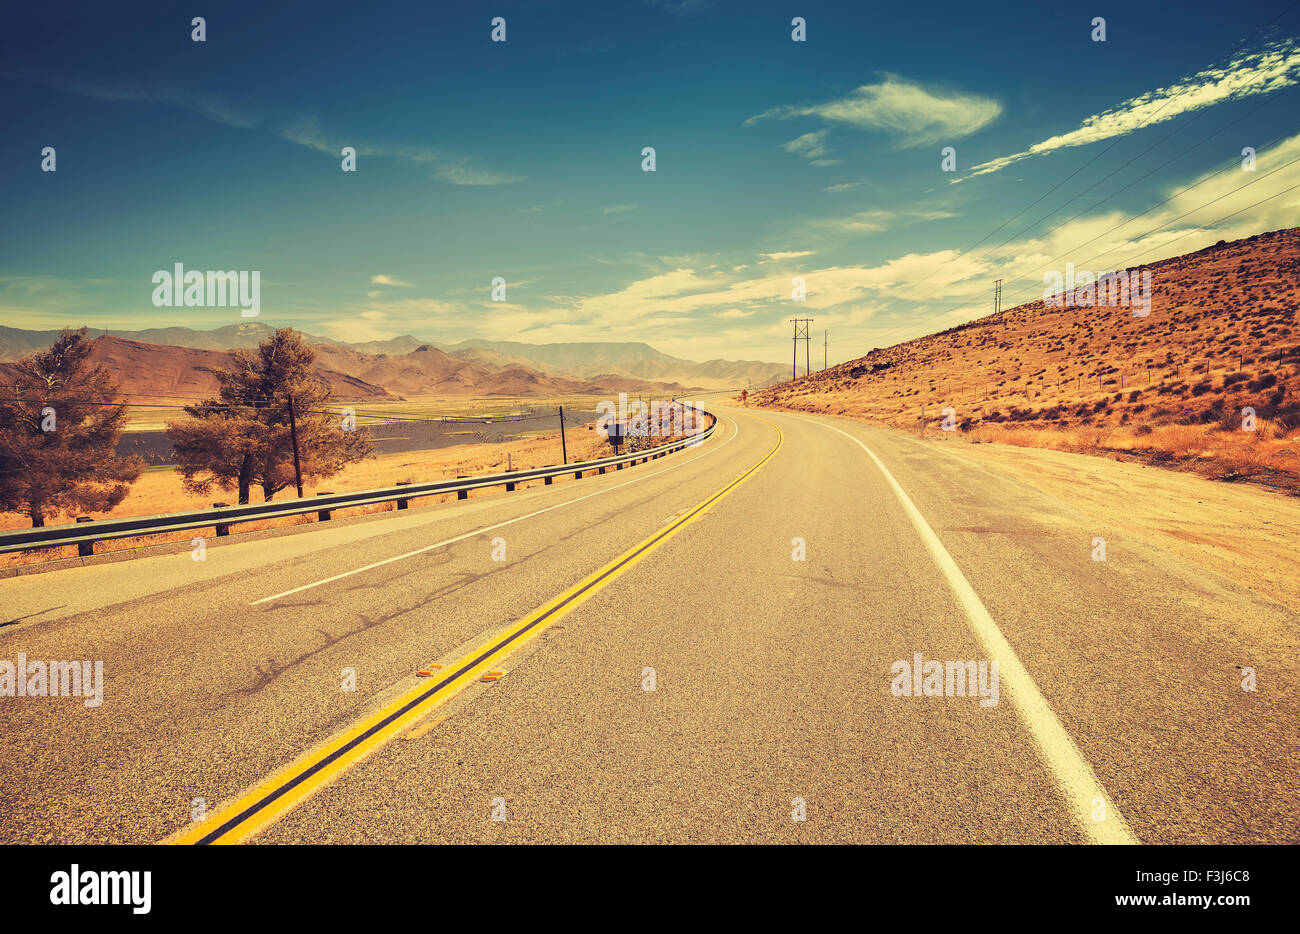 Retro old film style country highway in USA, travel adventure concept. - Stock Image